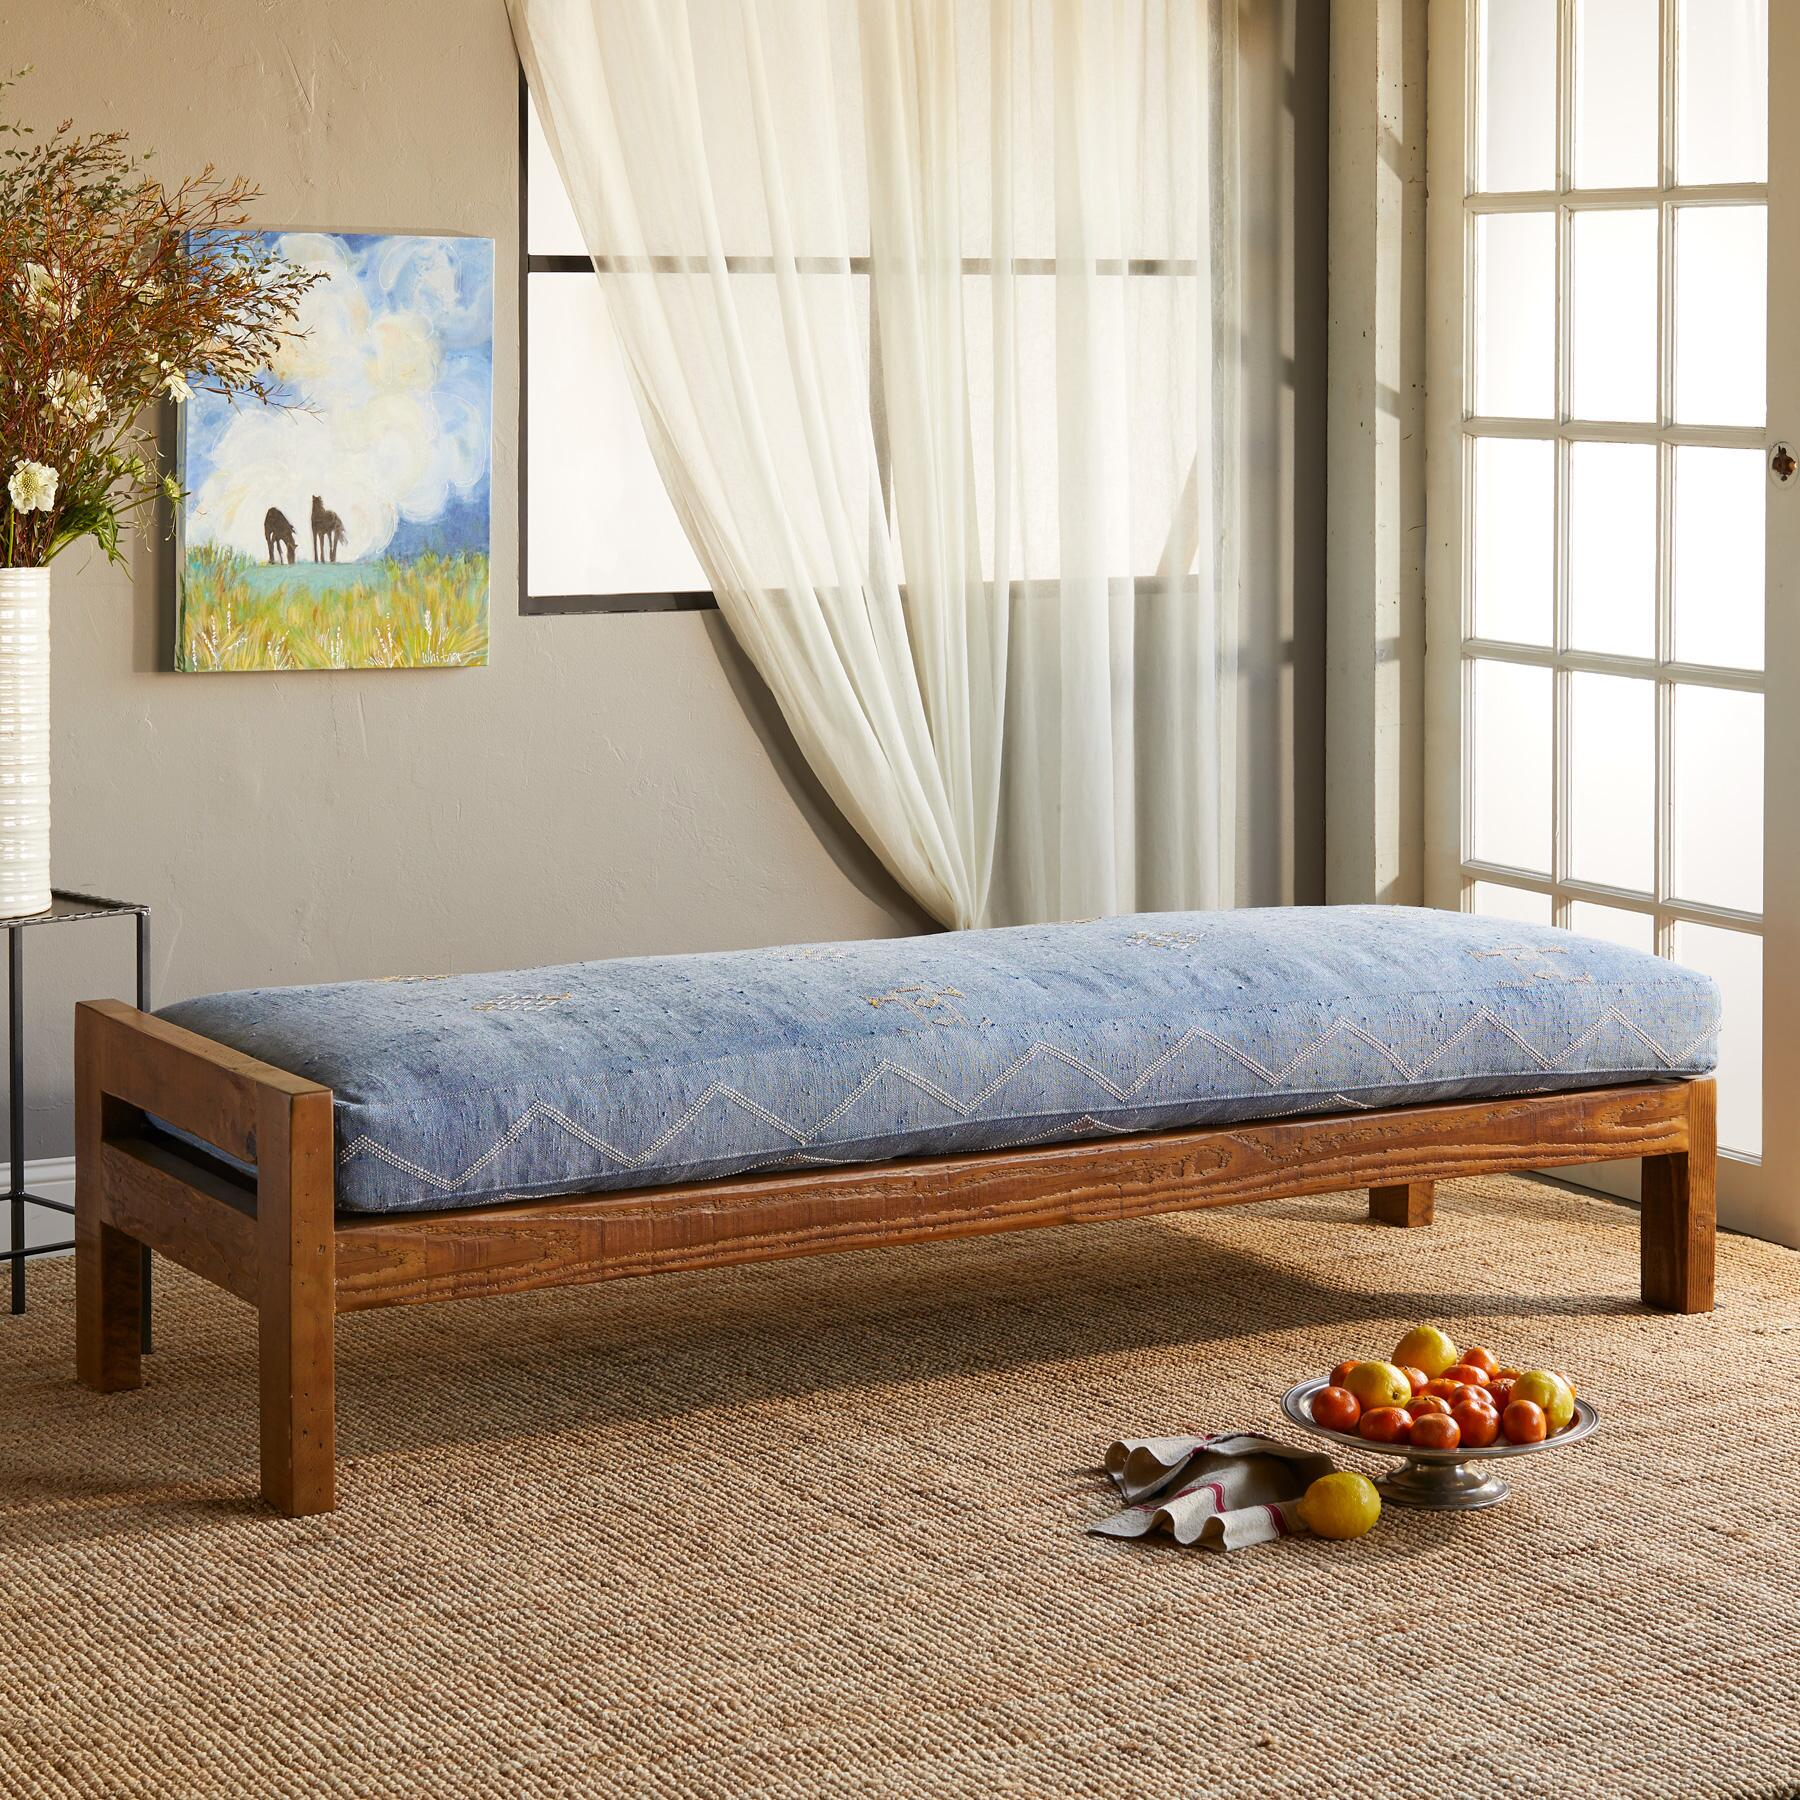 KSAR MOROCCAN DAY BED: View 1